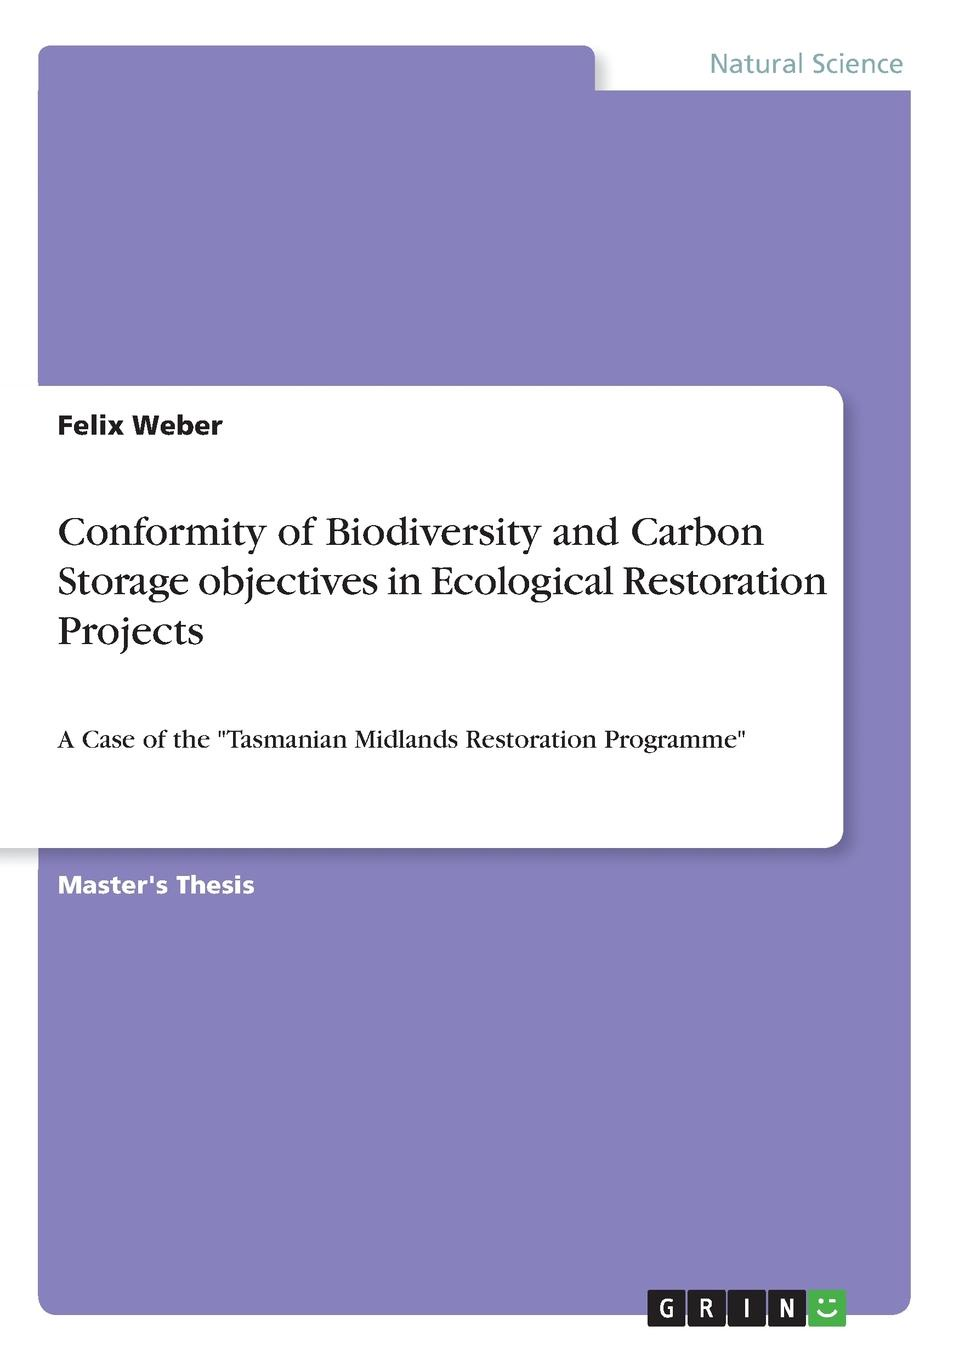 Felix Weber Conformity of Biodiversity and Carbon Storage objectives in Ecological Restoration Projects mannie samuelsen azenda the greatest exchange beyond restoration